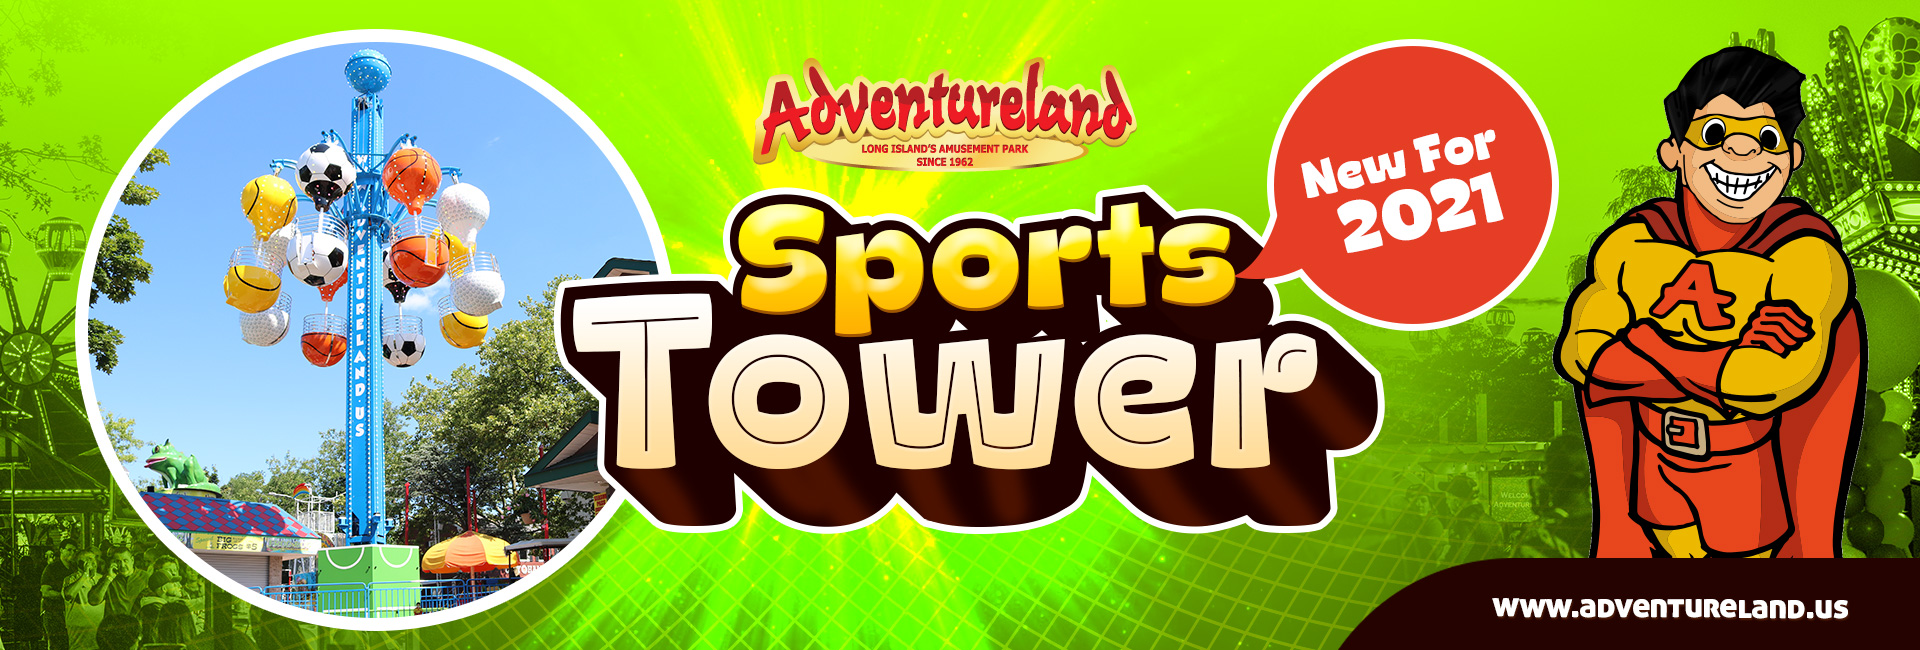 Sports Tower New for 2021